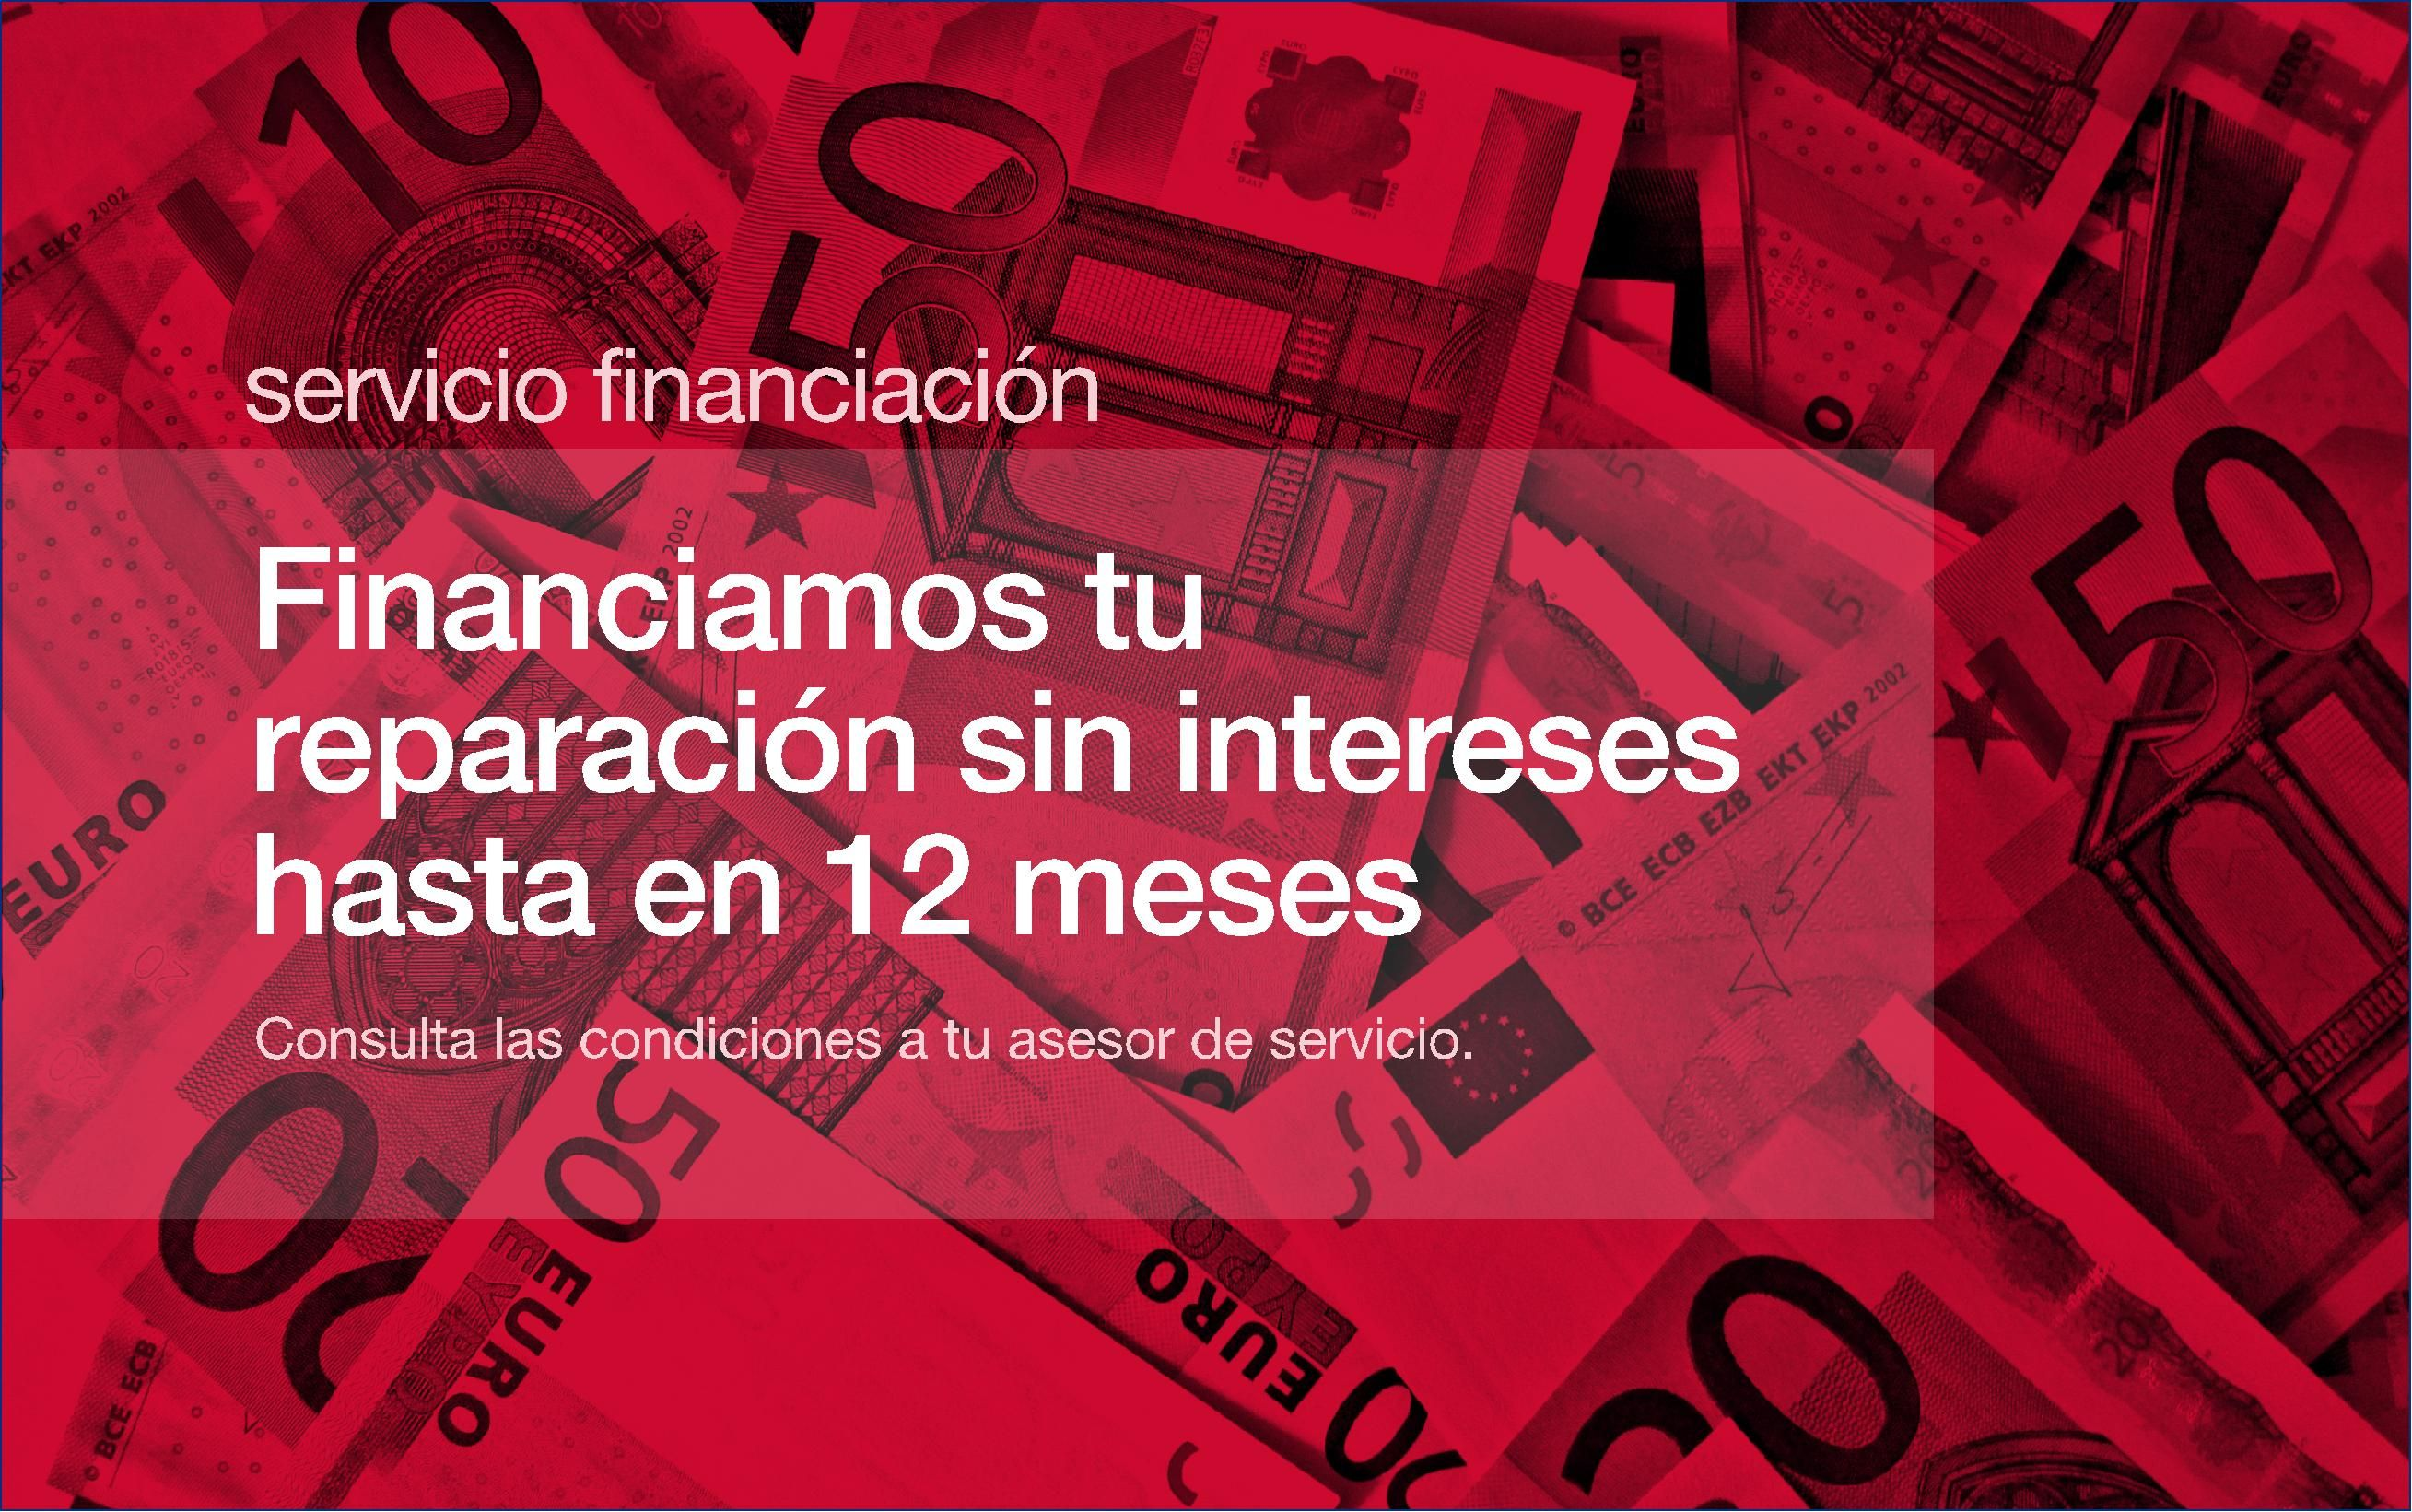 FINANCIAMOS TUS REPARACIONES SIN INTERESES !!!